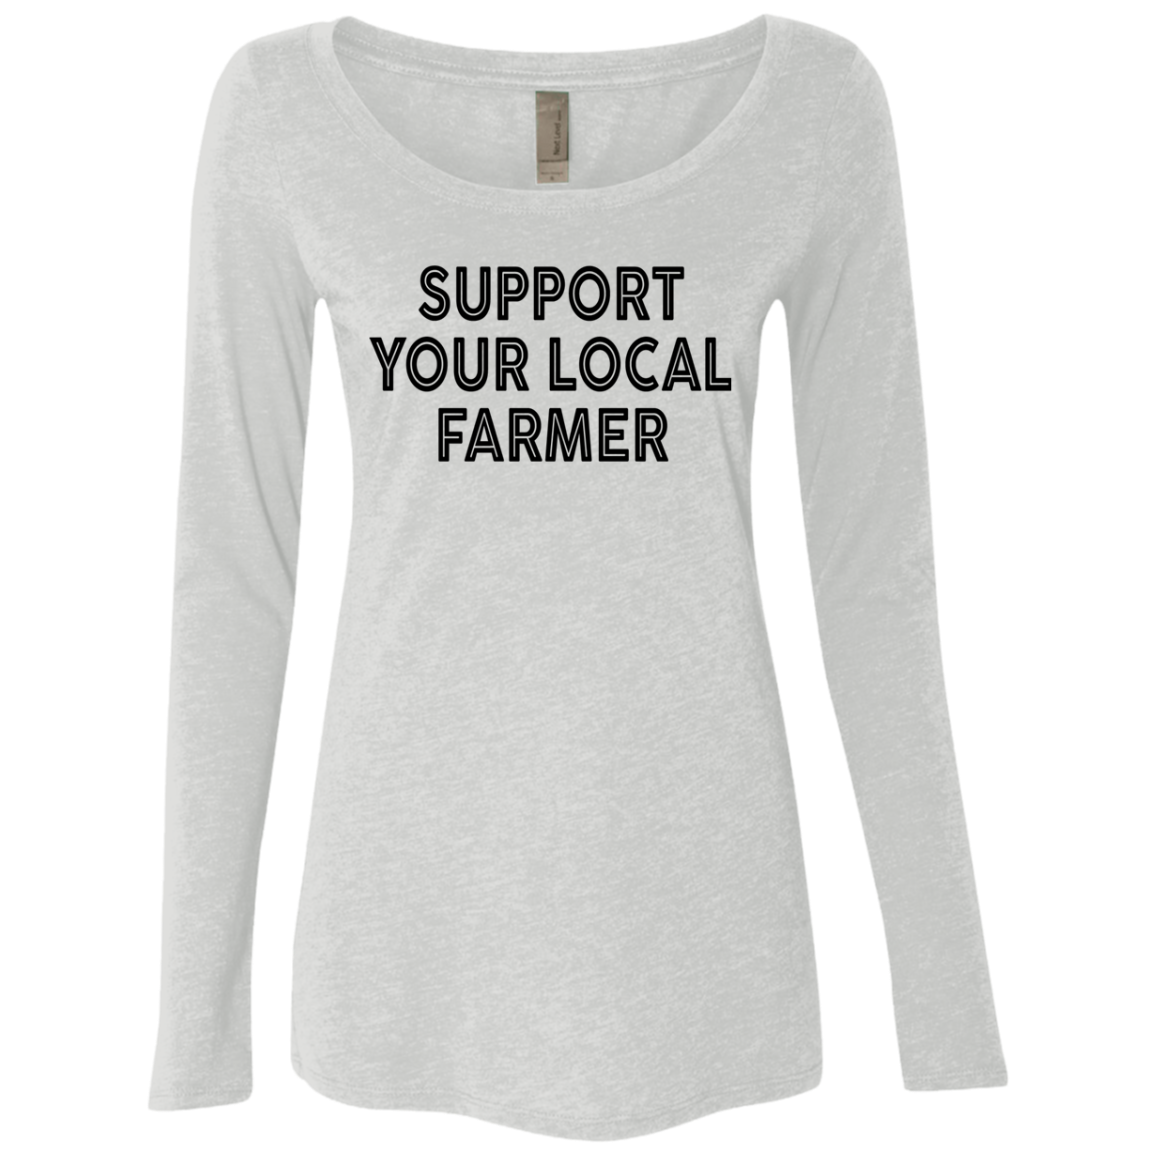 Support Your Local Farmer Women's Long Sleeve Tee